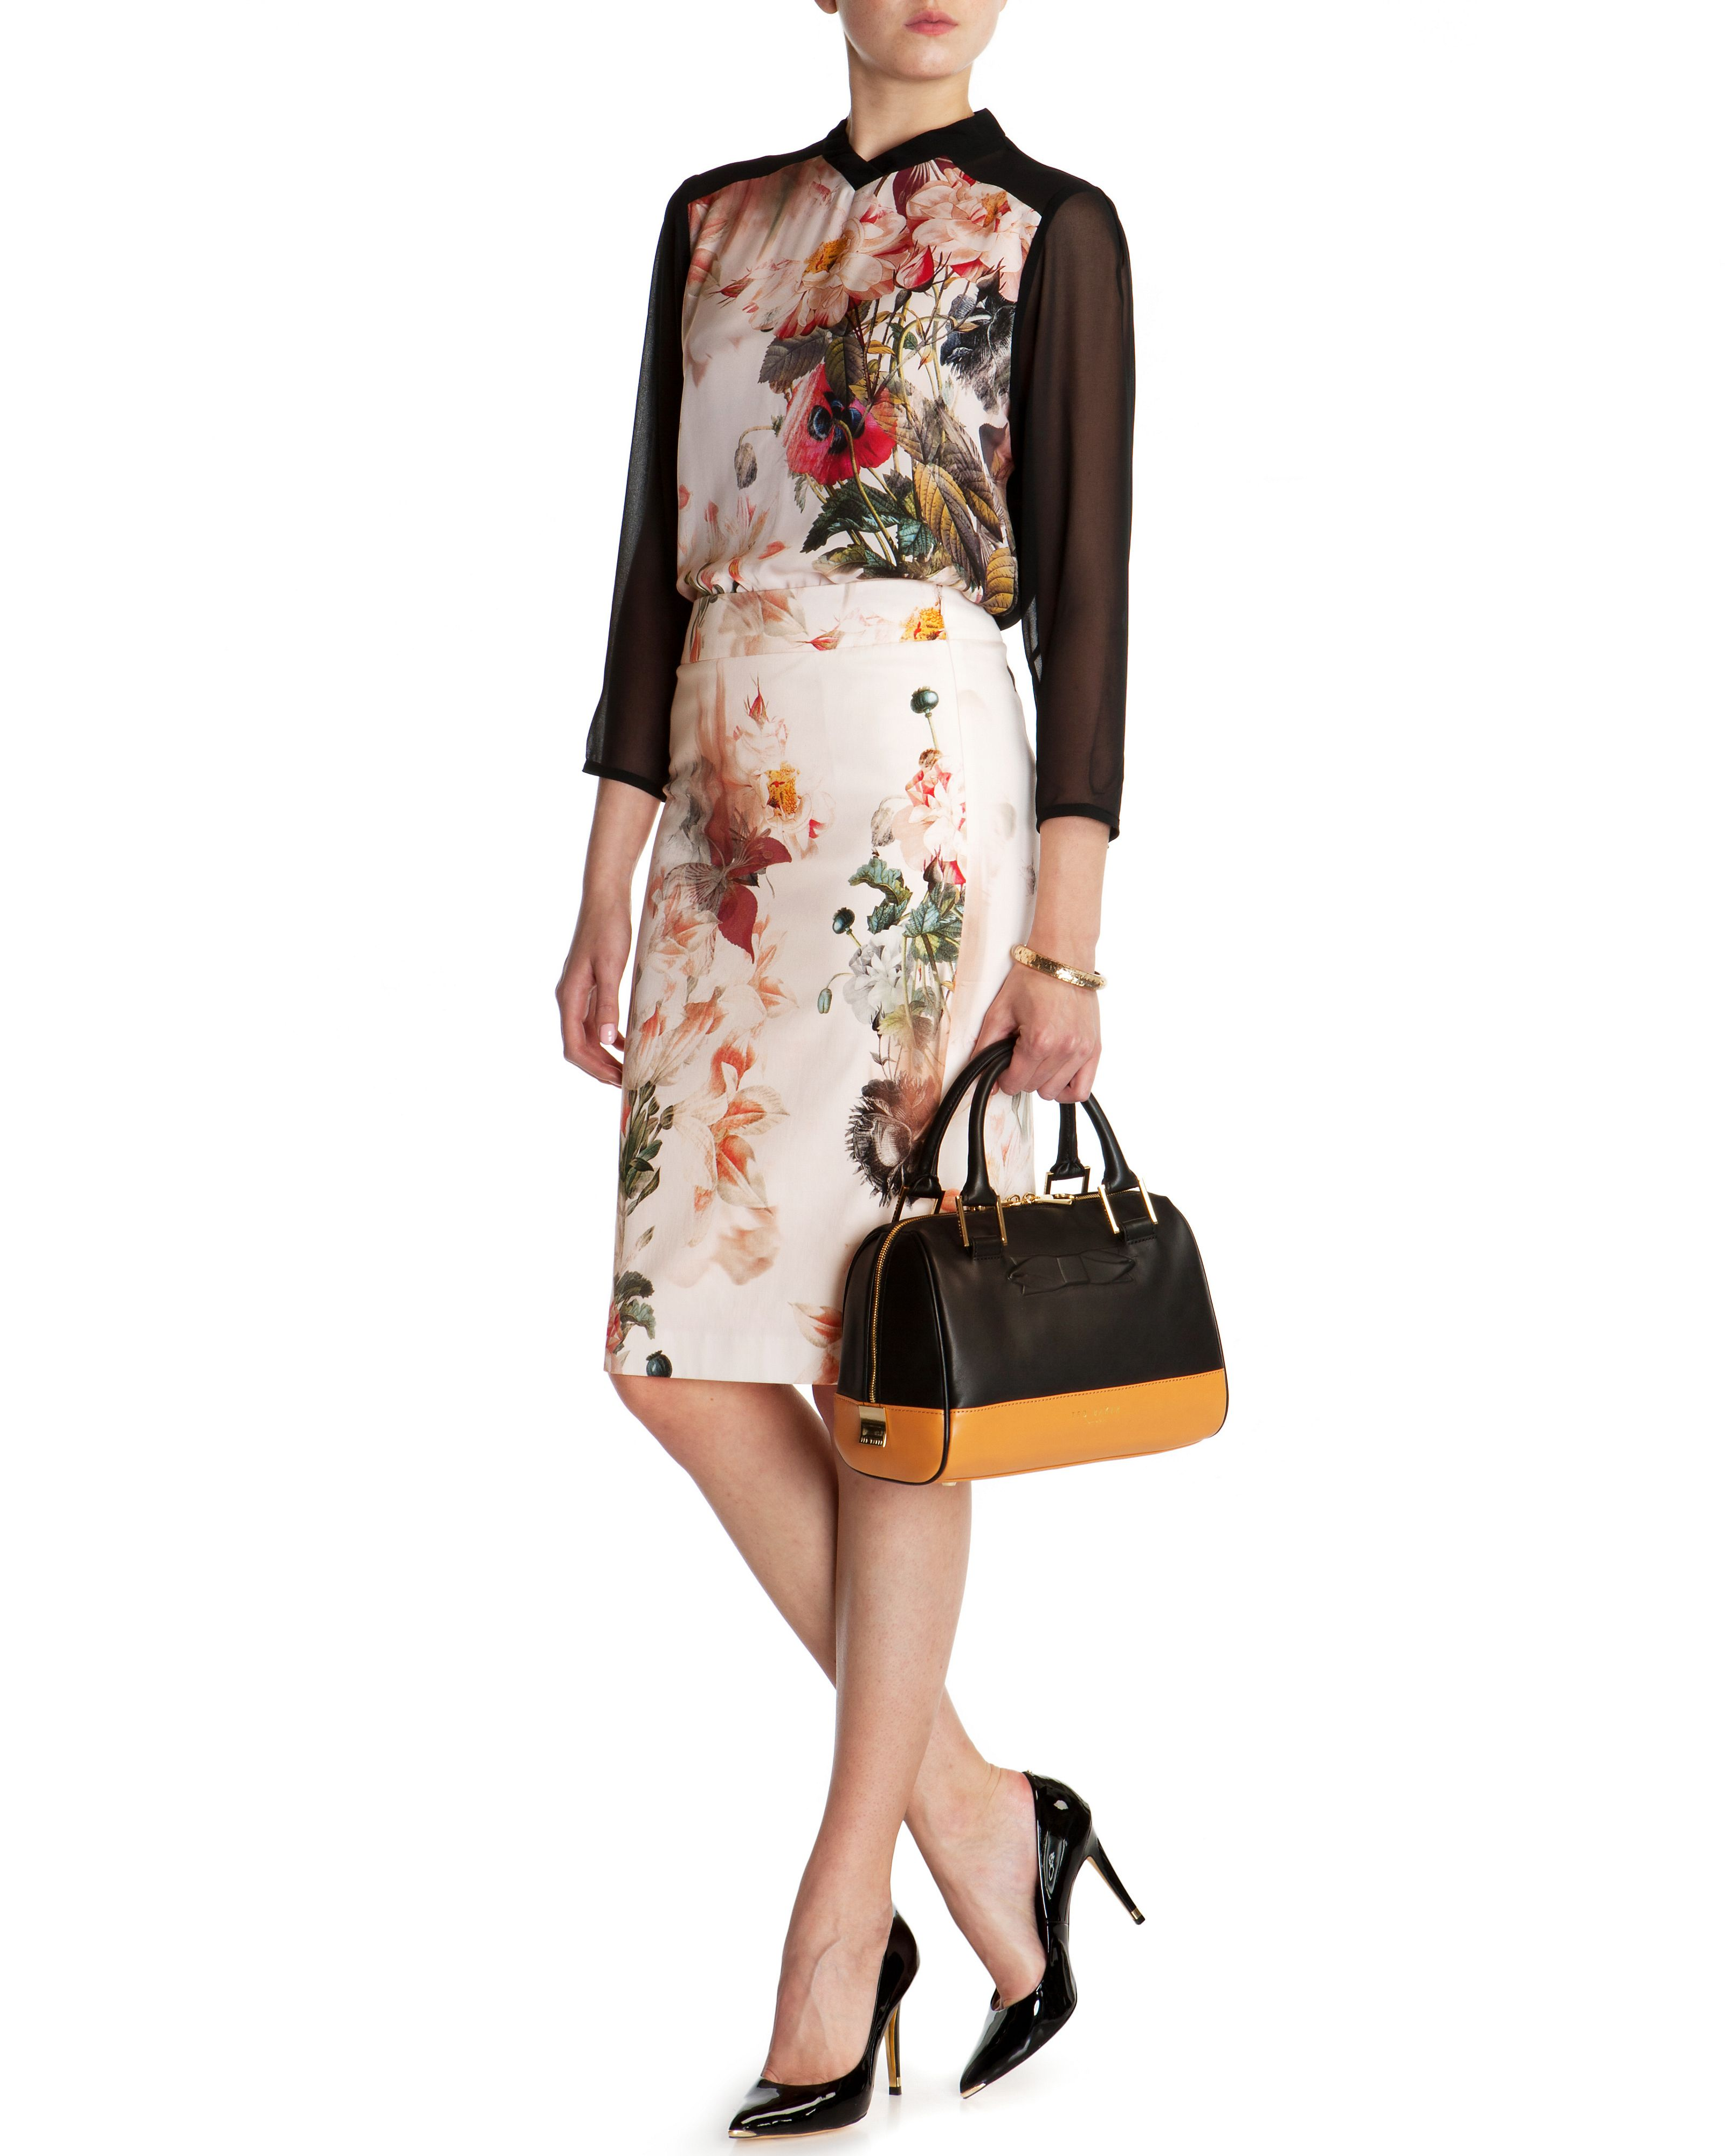 Liliyah opulent bloom pencil skirt